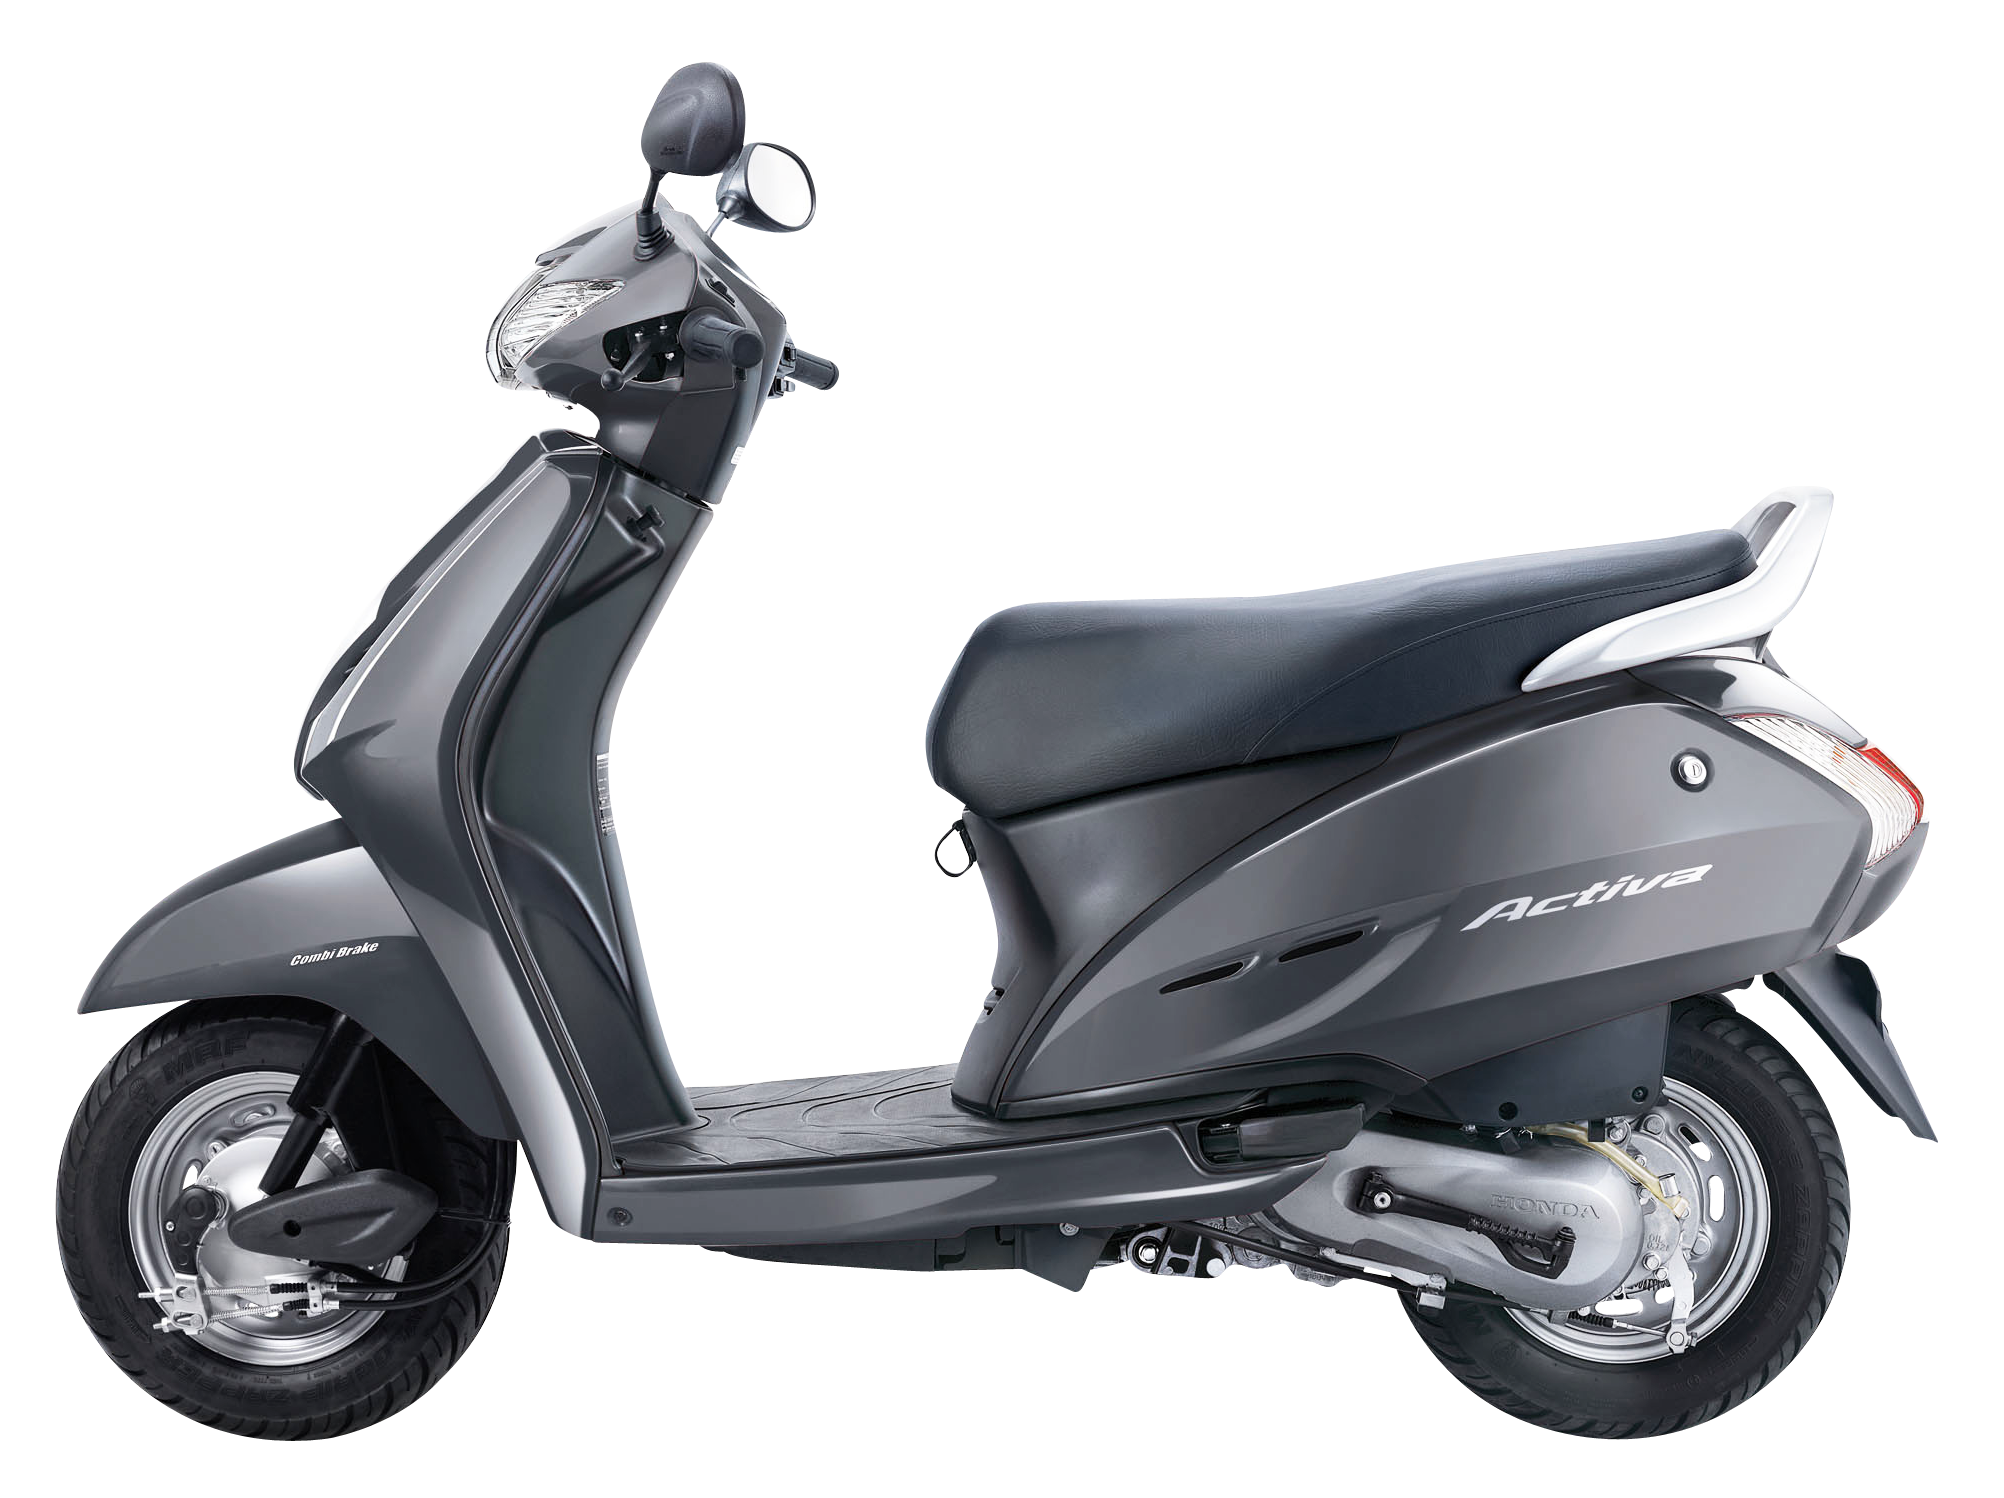 scooter honda activa scooty png image pngpix #37140